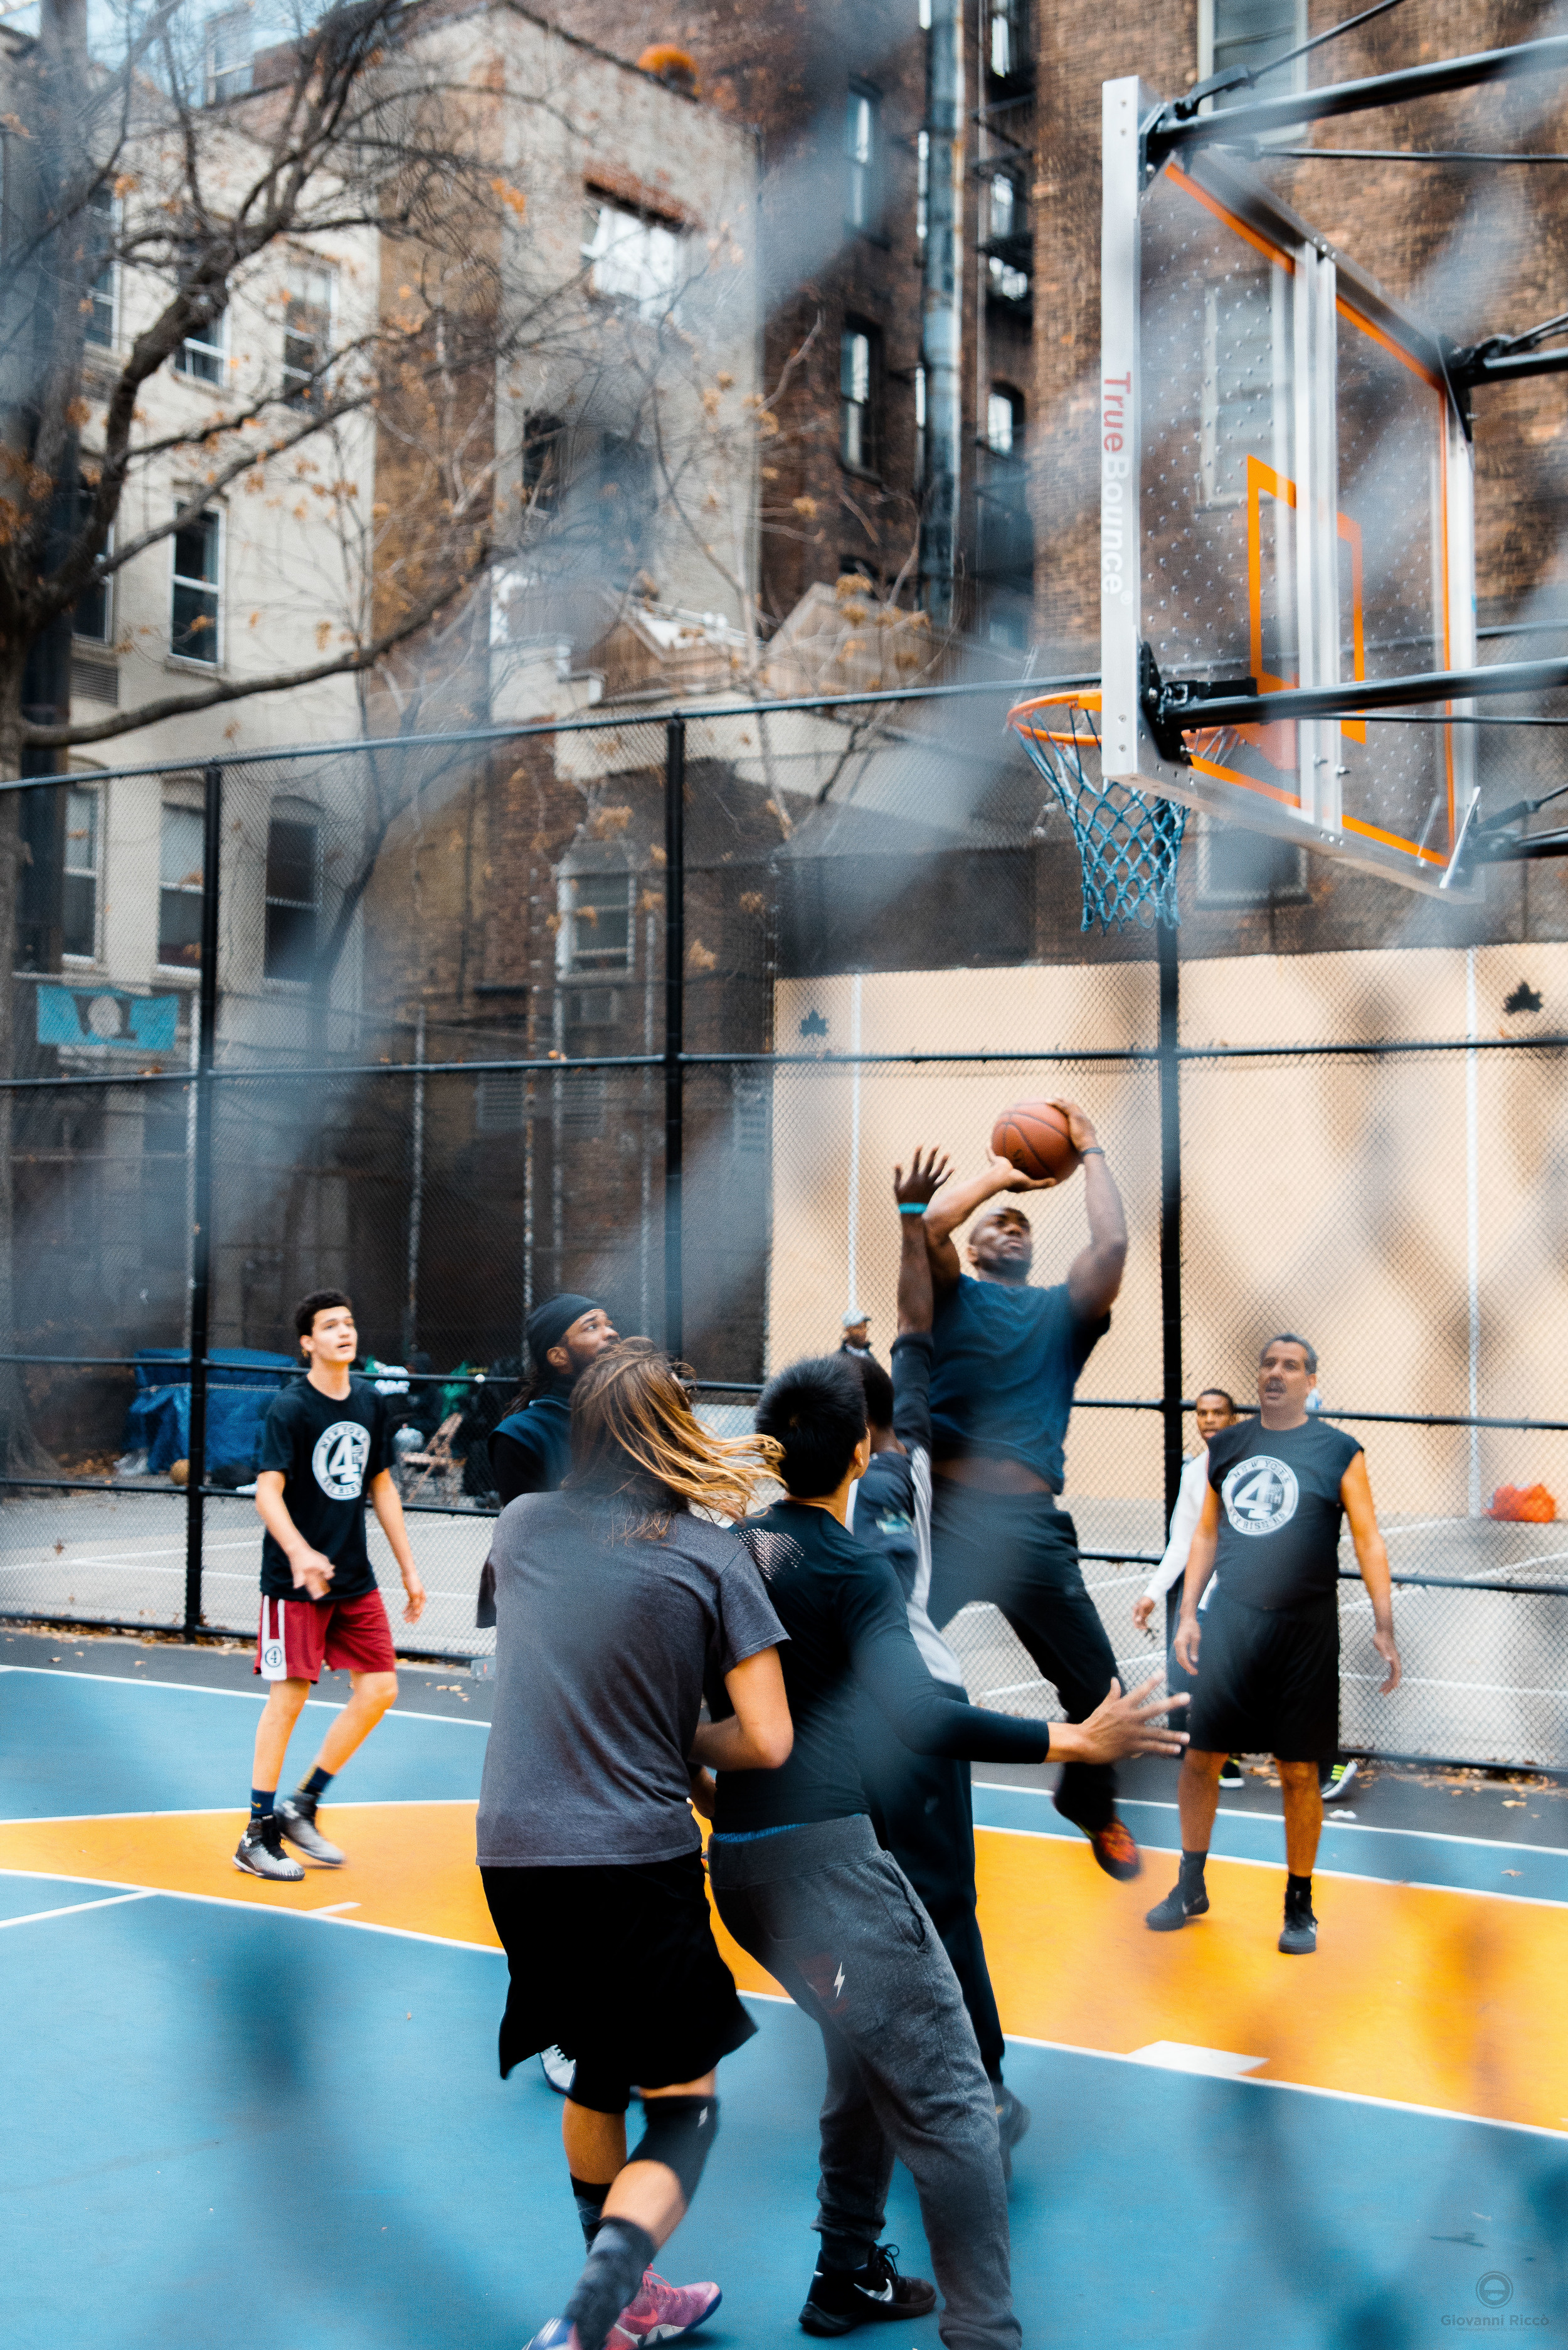 Basketball players in NYC